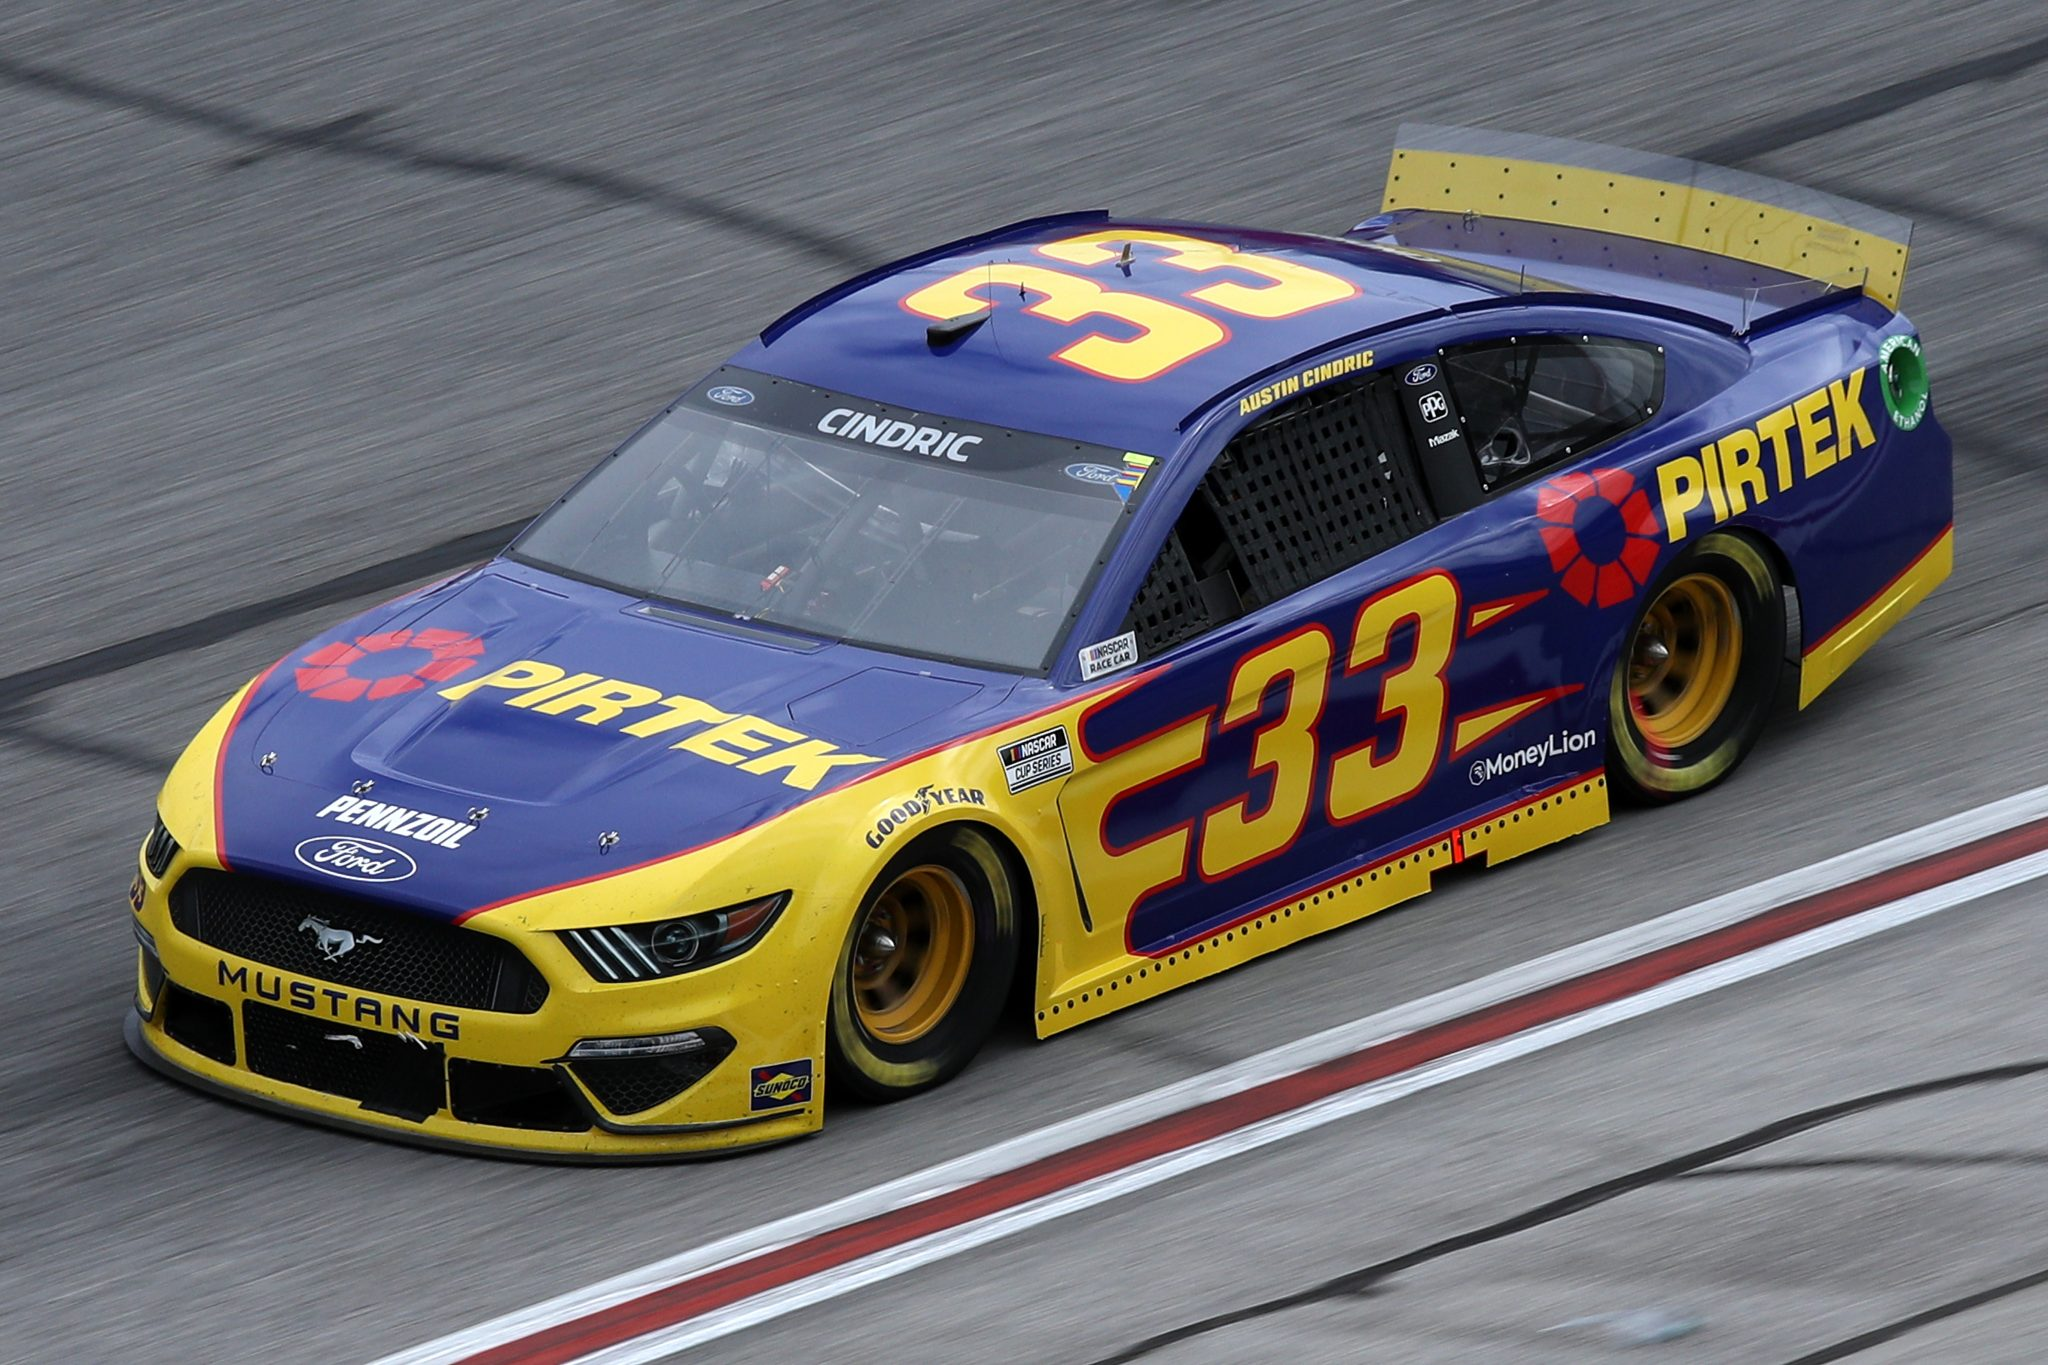 HAMPTON, GEORGIA - MARCH 21: Austin Cindric, driver of the #33 Pirtek Ford, drives during the NASCAR Cup Series Folds of Honor QuikTrip 500 at Atlanta Motor Speedway on March 21, 2021 in Hampton, Georgia. (Photo by Sean Gardner/Getty Images) | Getty Images